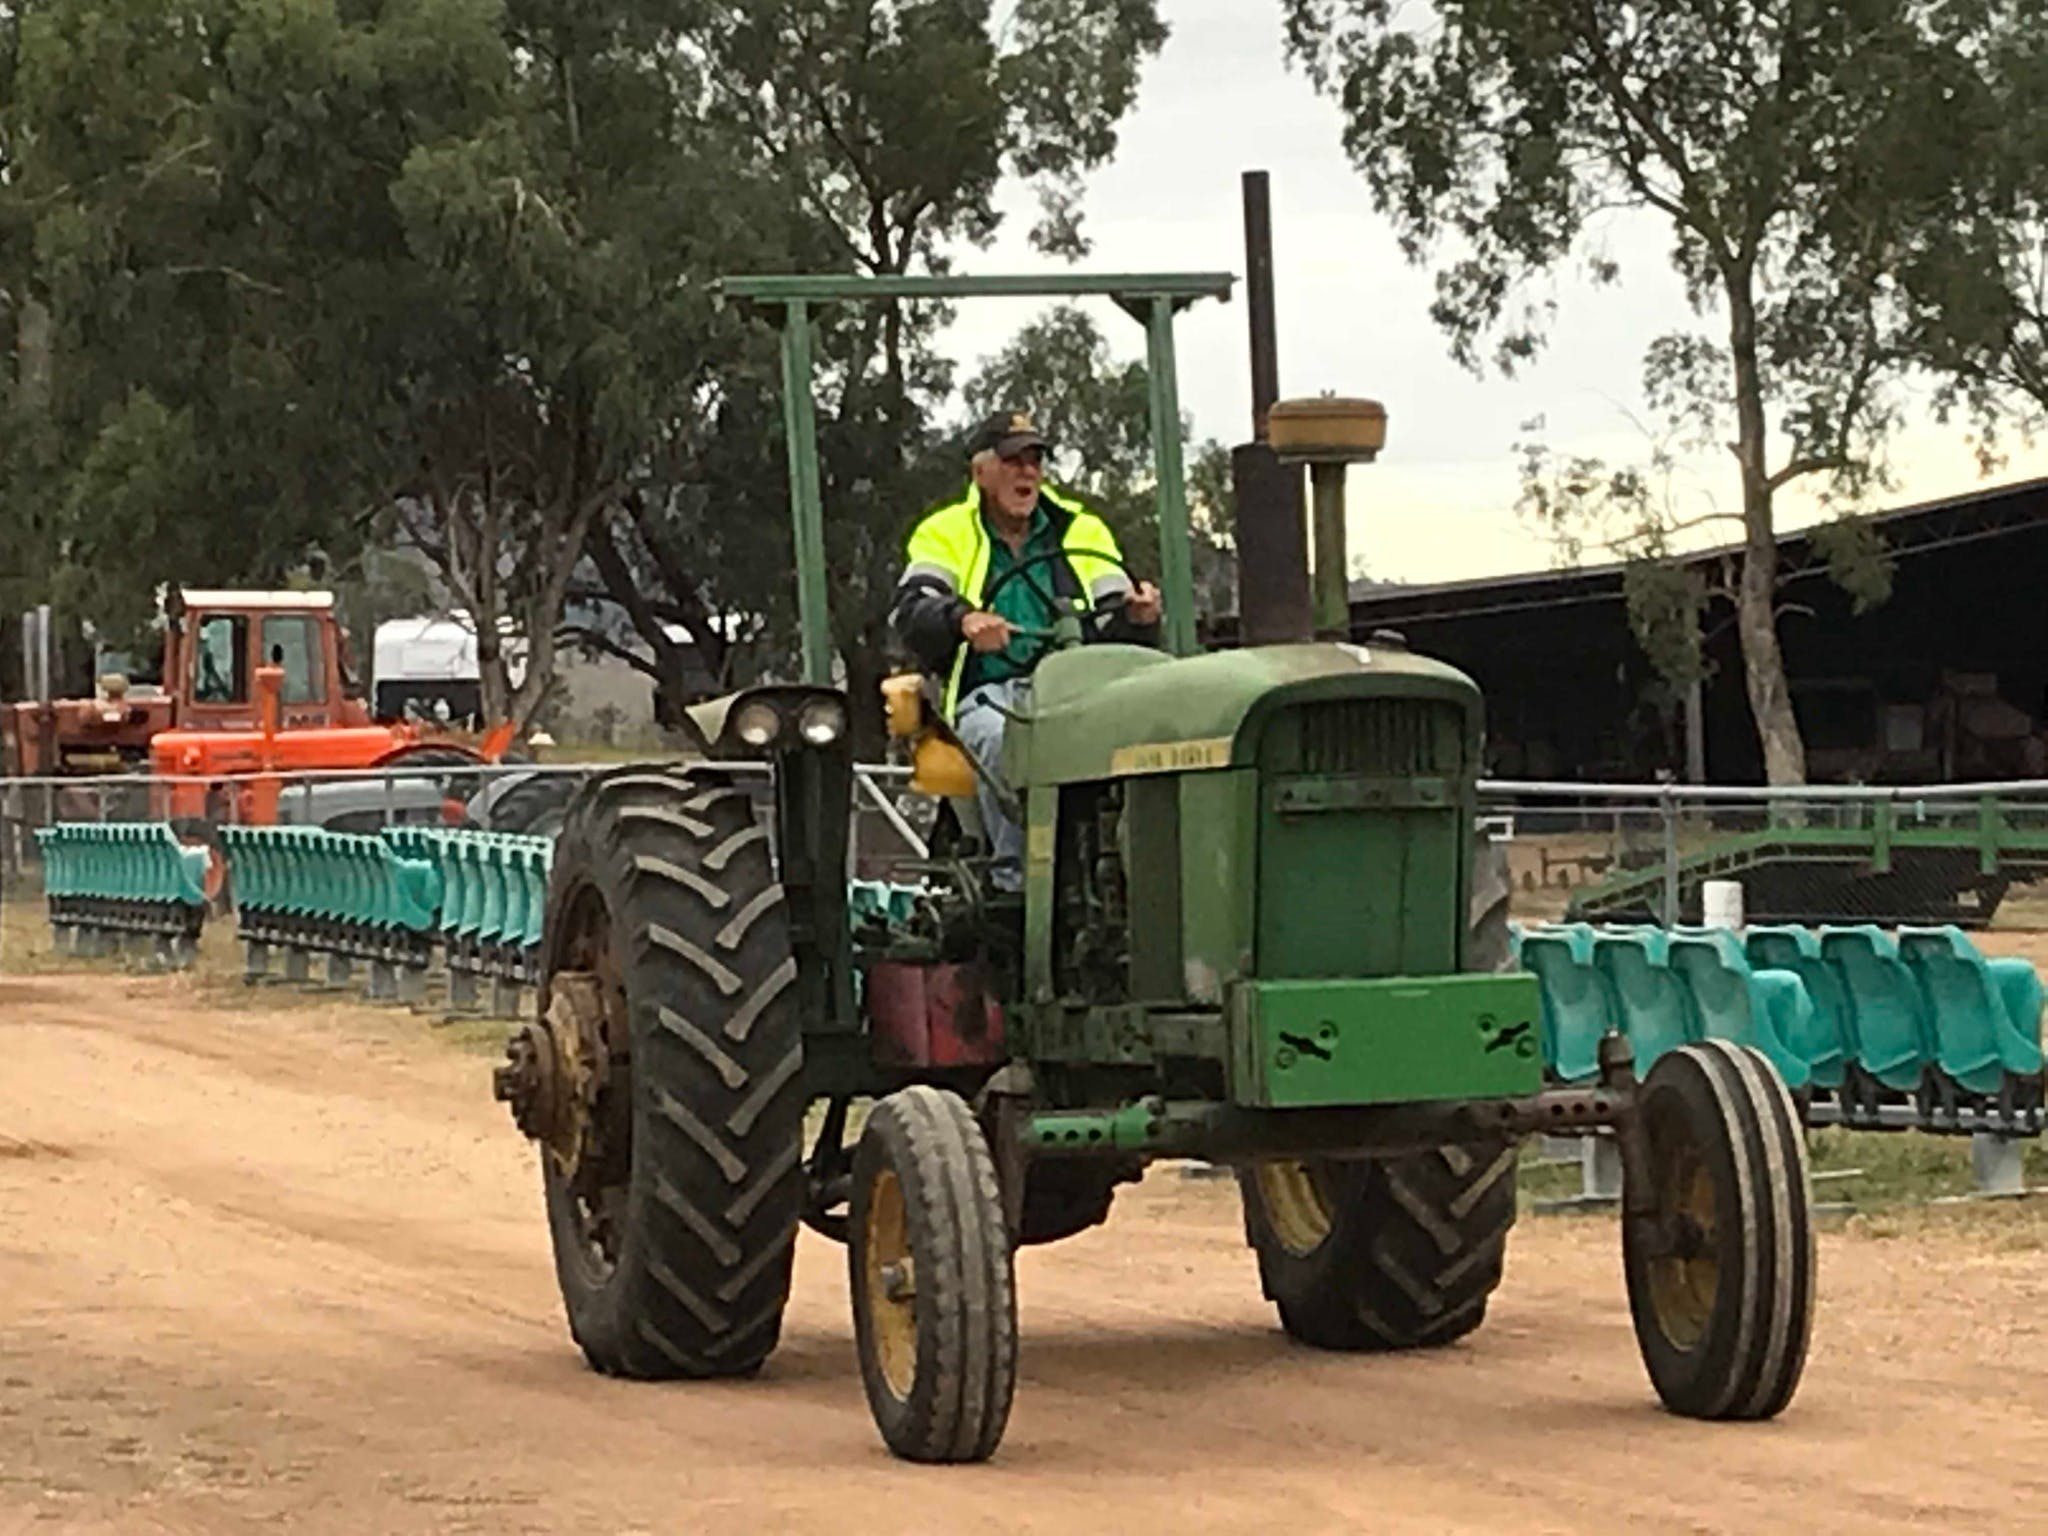 Liverpool Plains Wheels in Motion - VIC Tourism